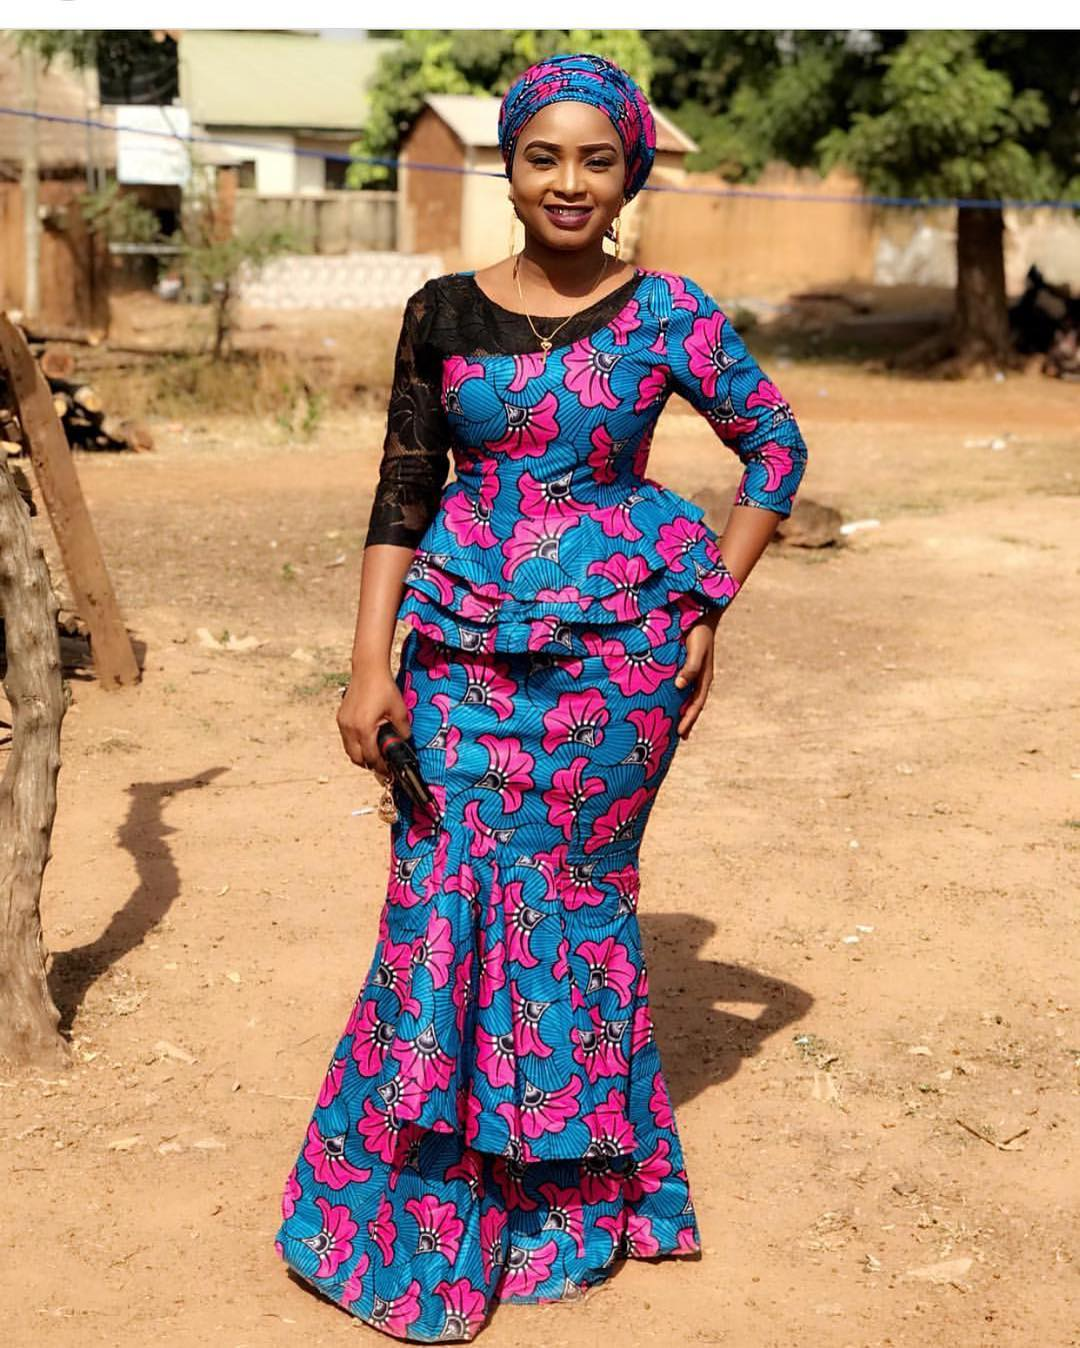 Super Gorgeous Ankara Styles For Beautiful Ladies To Slay In 2018 Download Latest Ankara